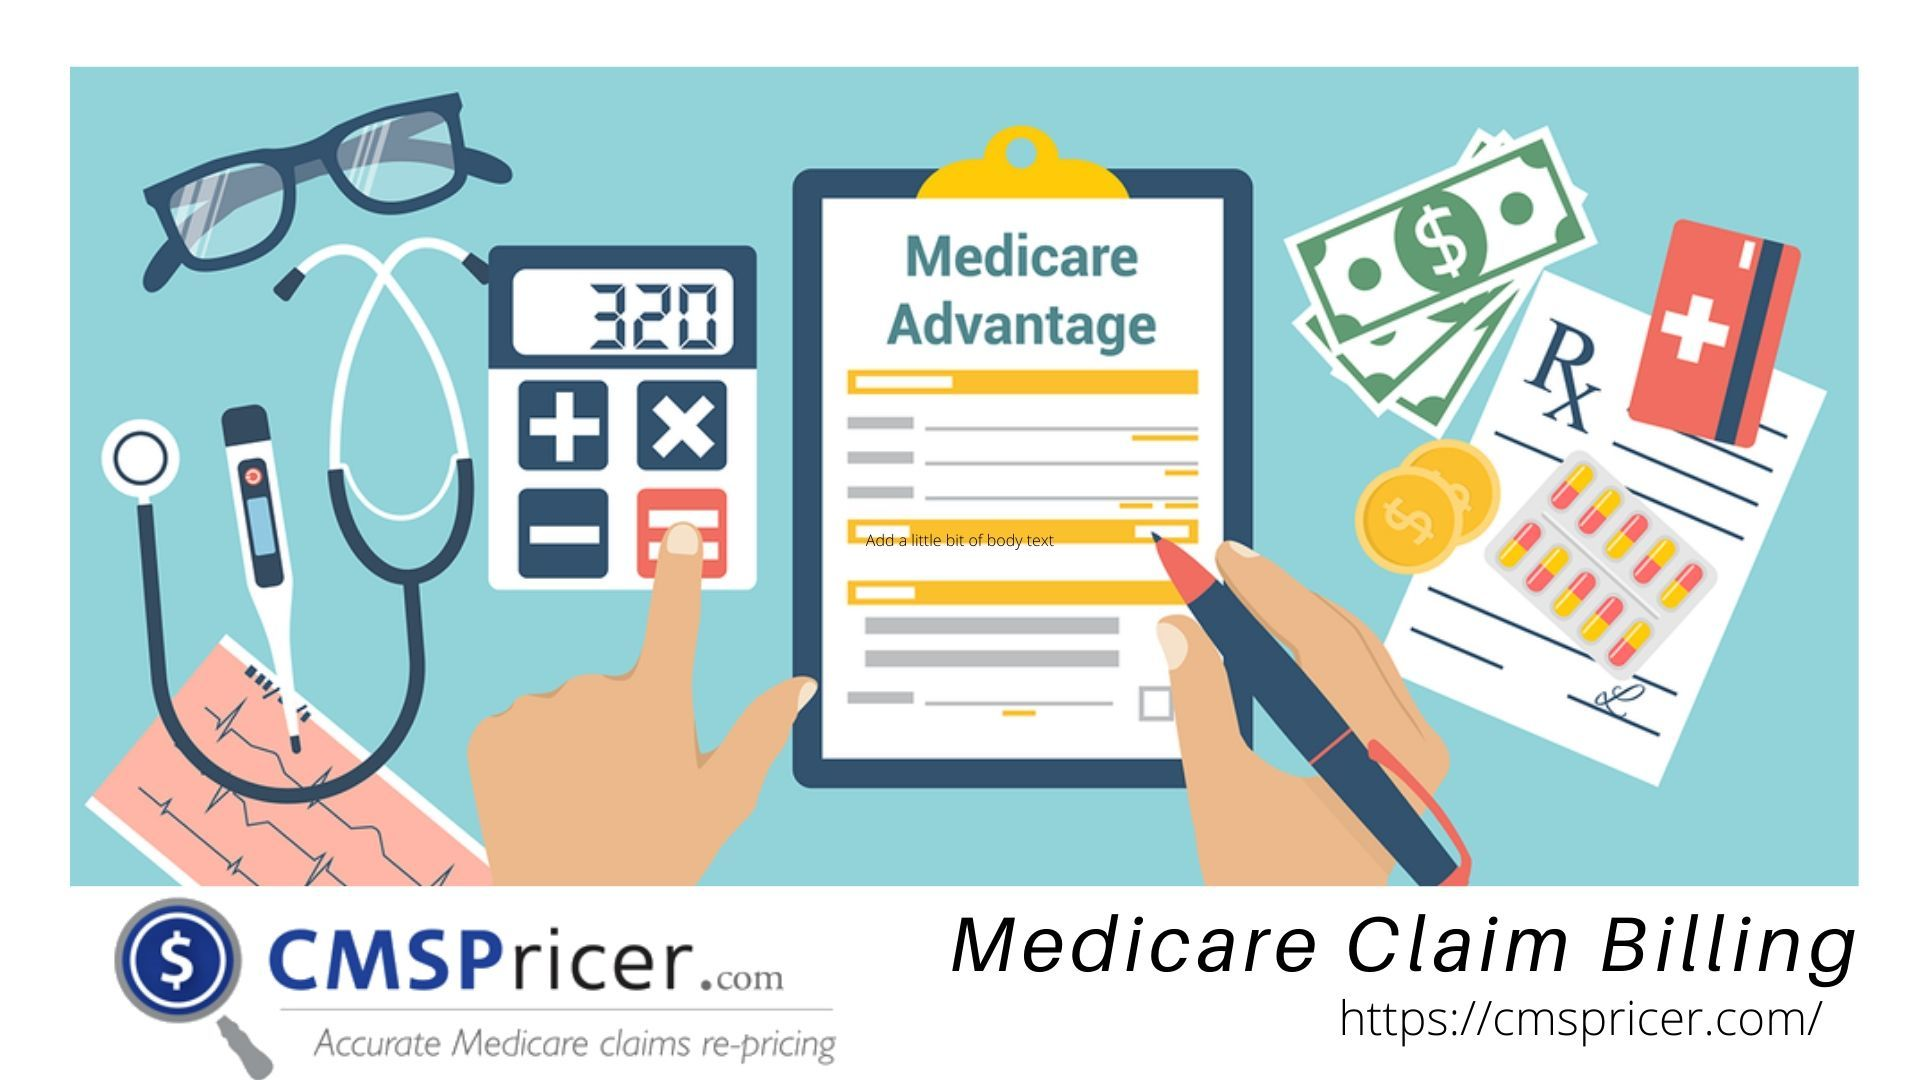 Medicare Claim Billing CMSPricer is a SaaS integrated tool that is dedicated to improving health... - JustPaste.it